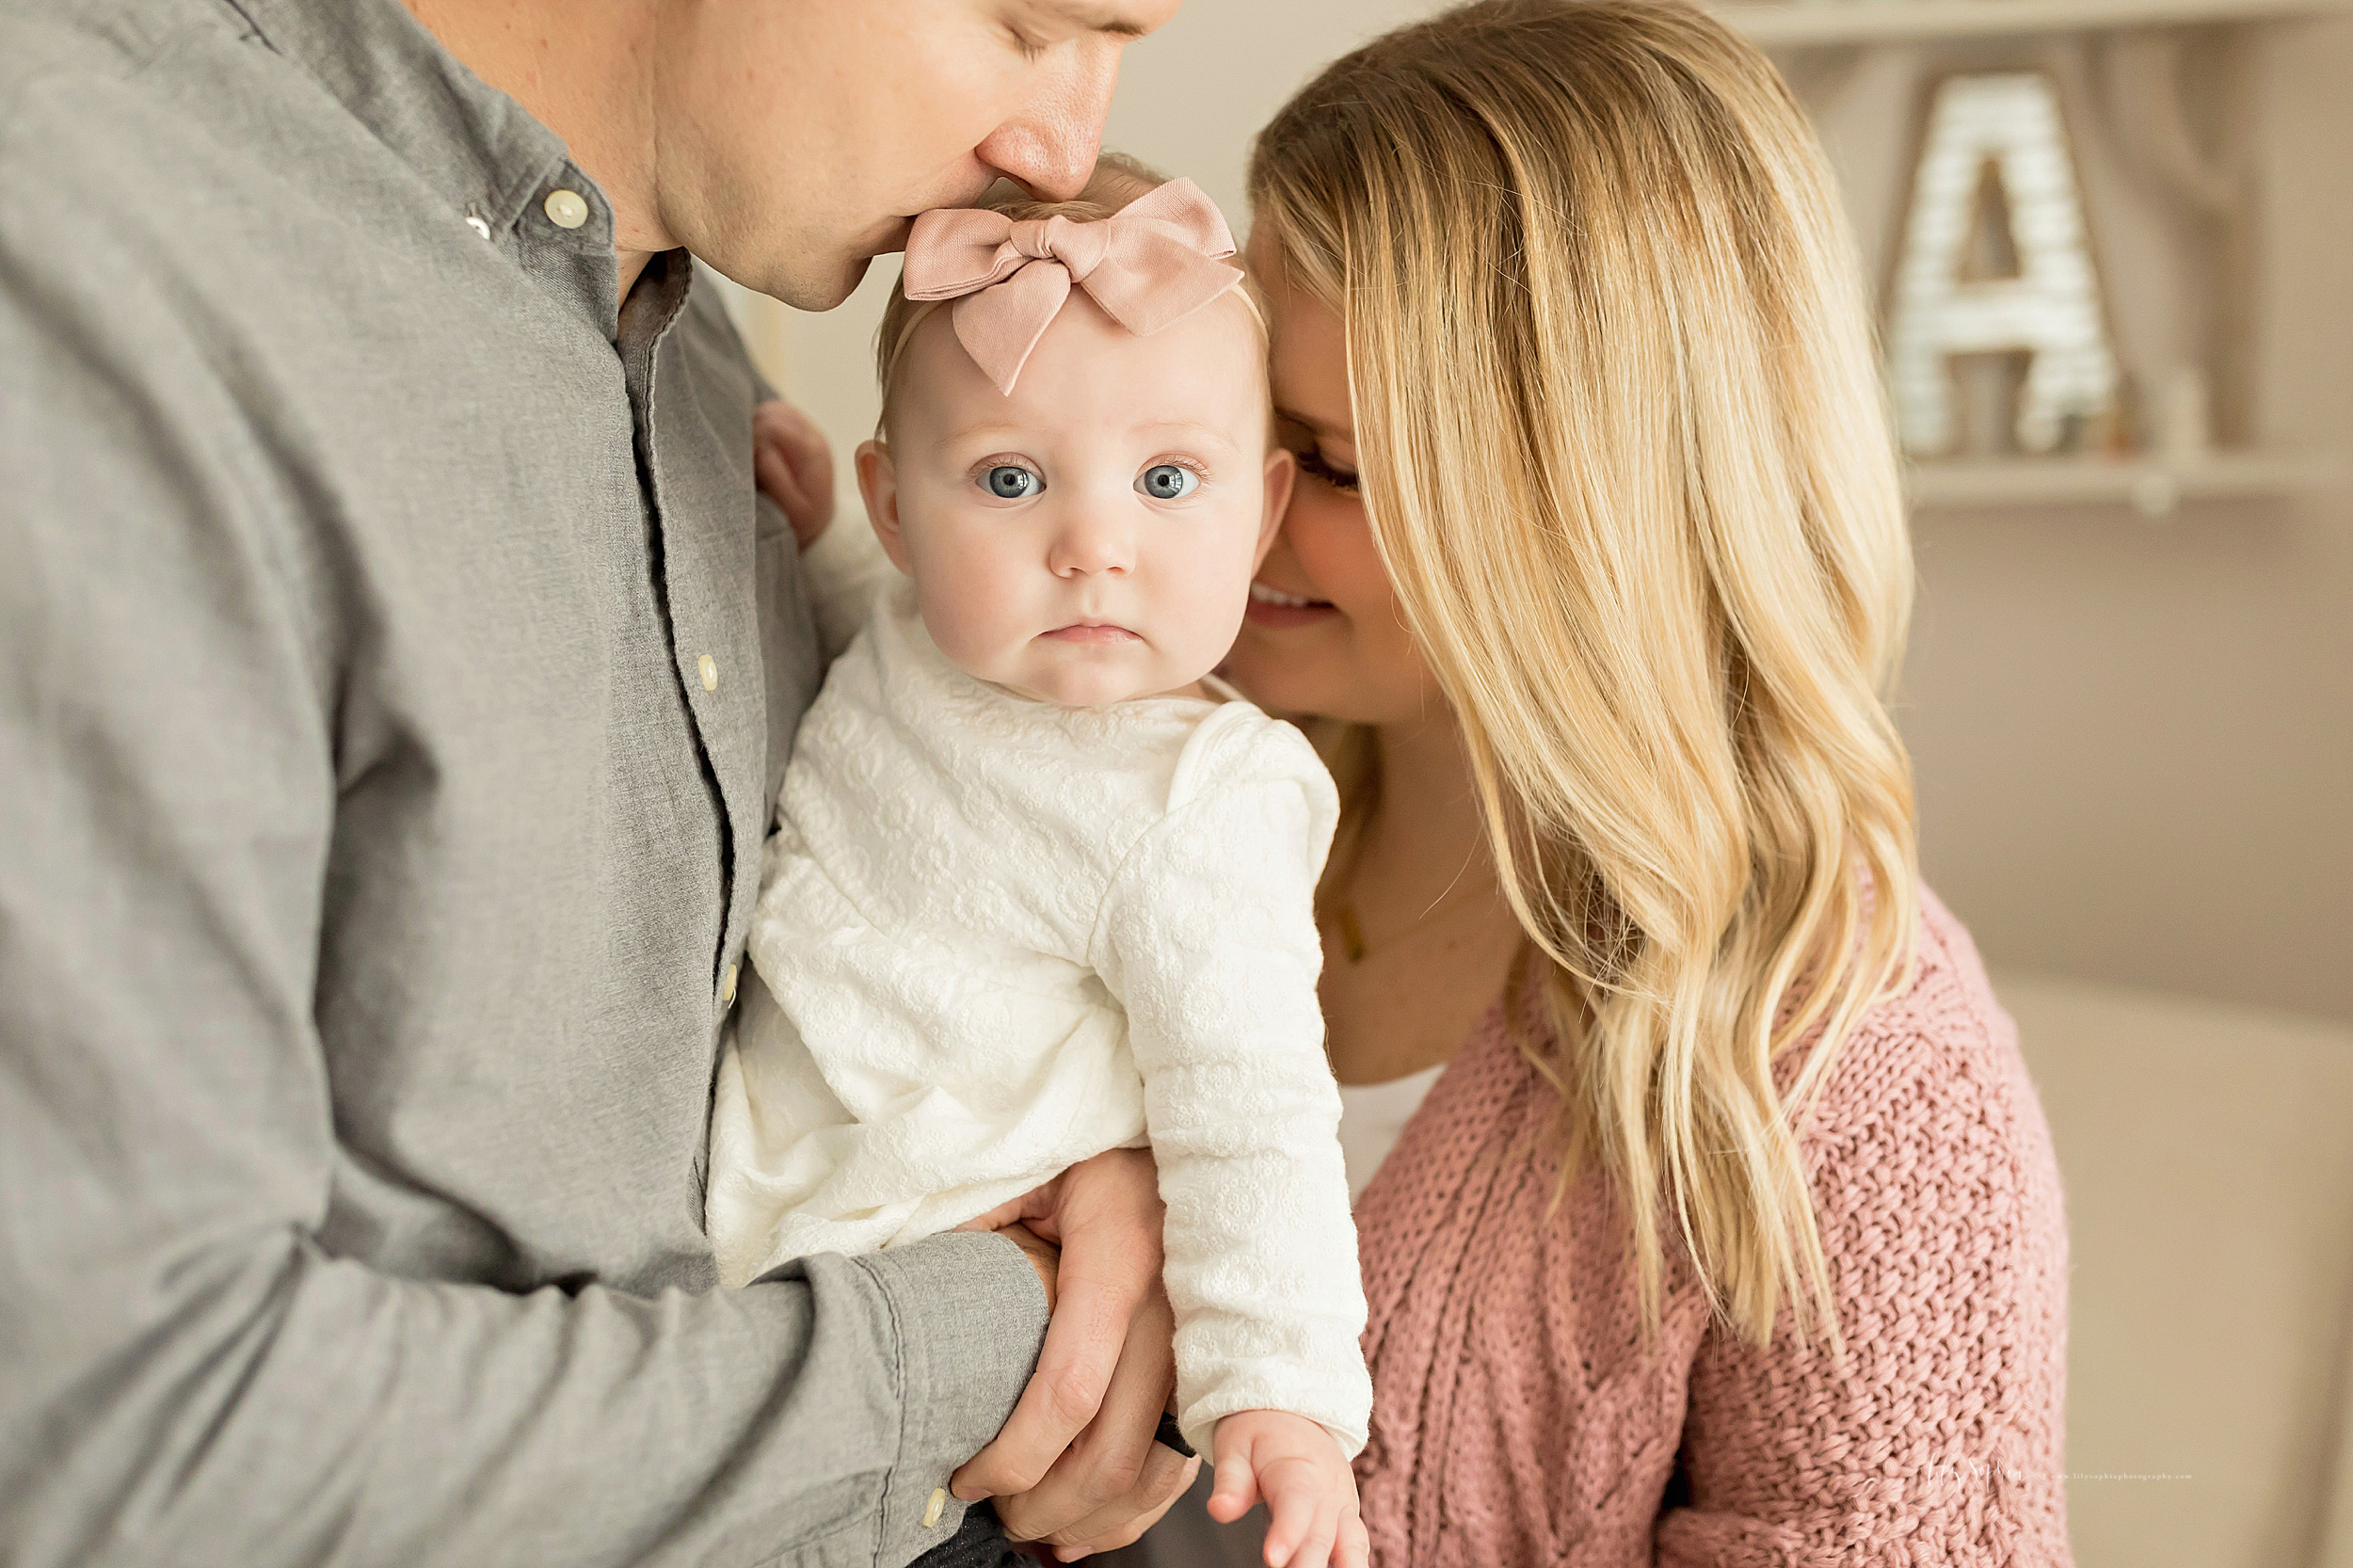 atlanta-midtown-brookhaven-ashford-dunwoody-virginia-highlands-roswell-decatur-lily-sophia-photography-in-home-six-month-milestone-family-lifestyle-session-sandy-springs_0673.jpg